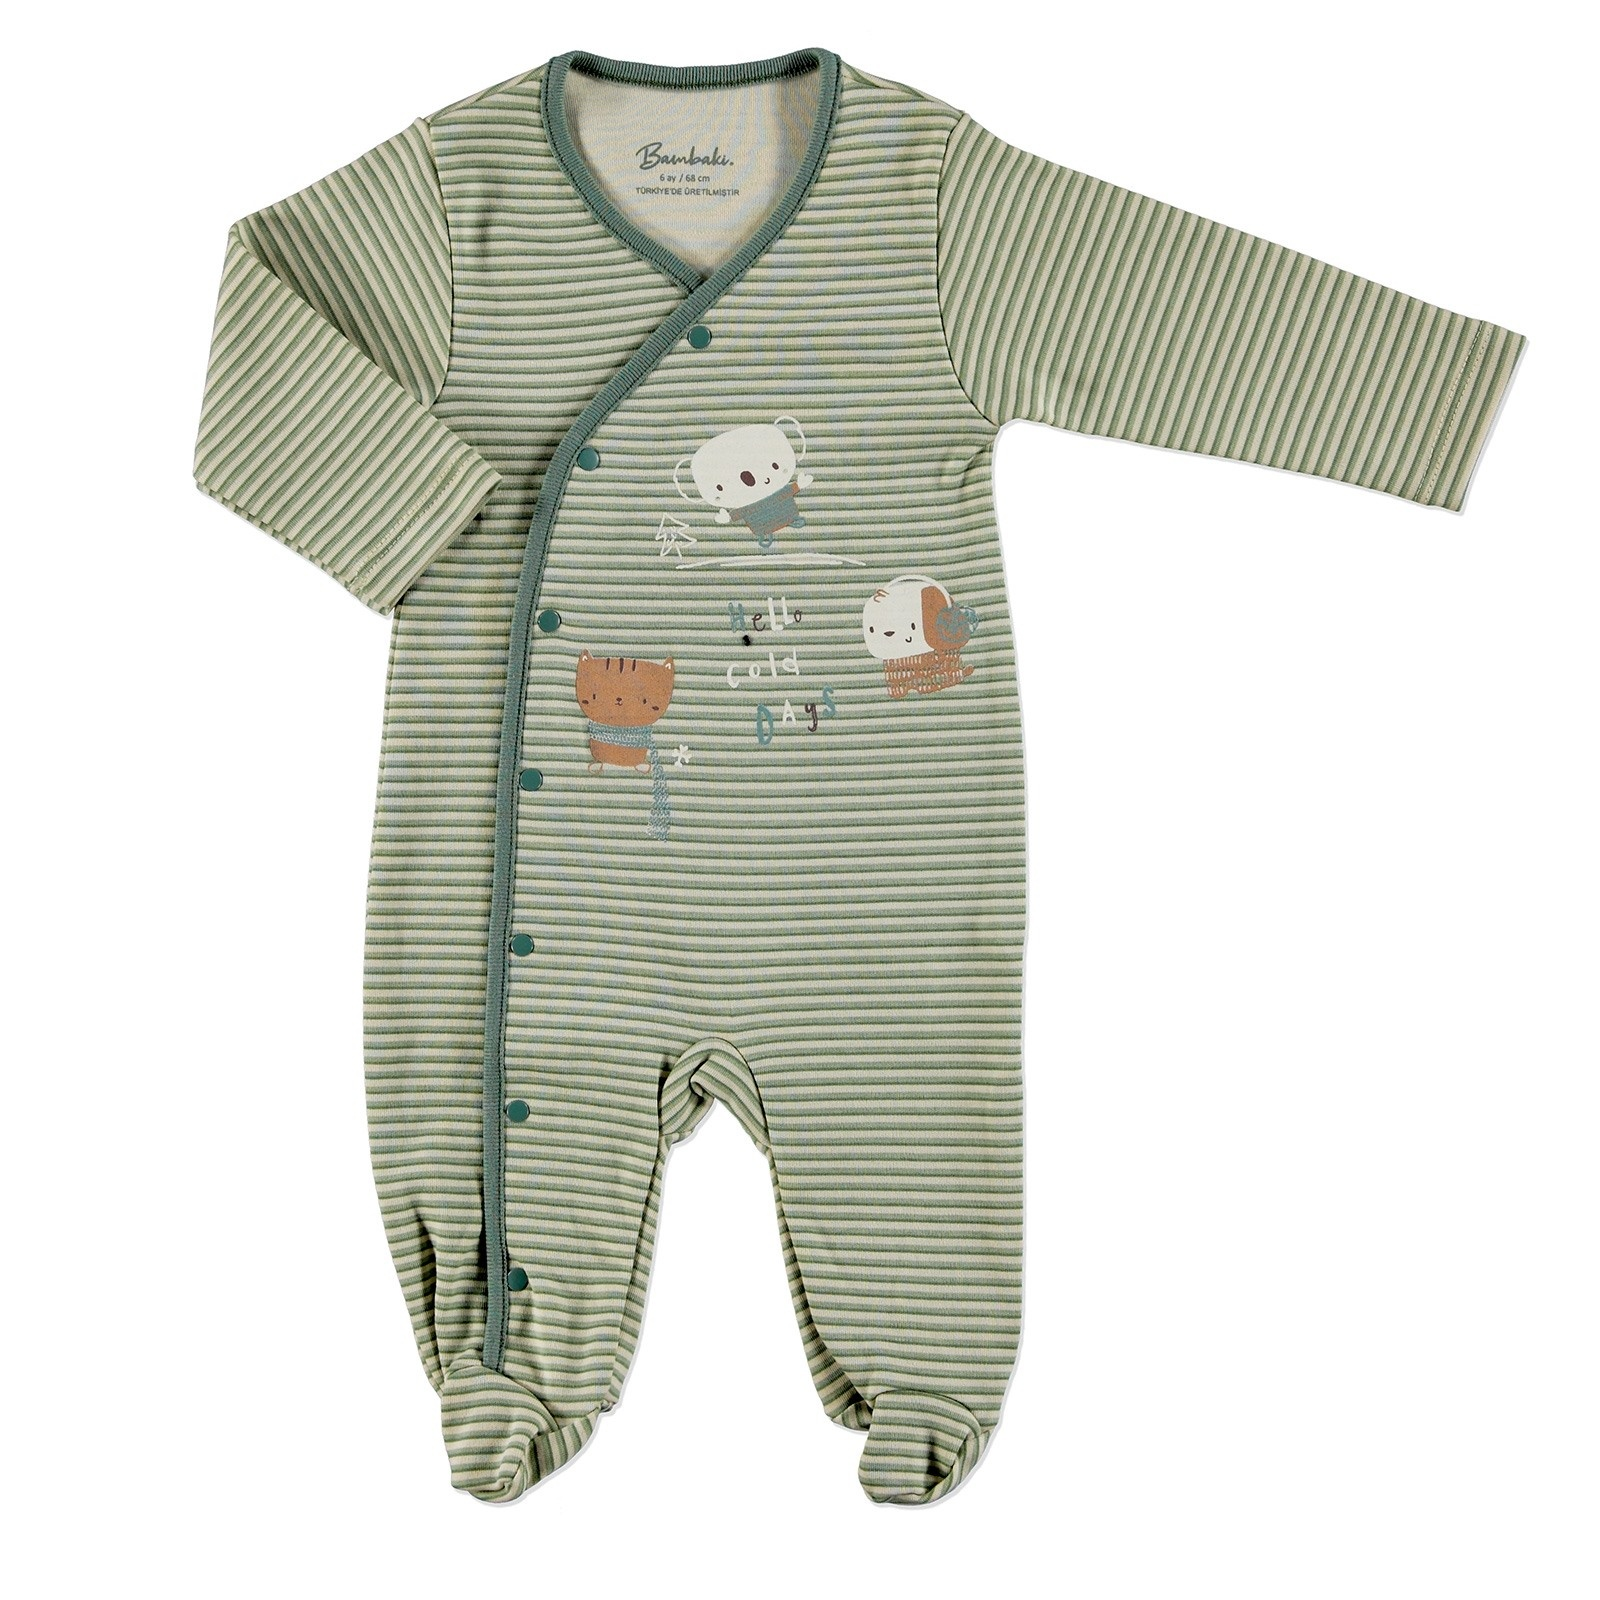 Ebebek Bambaki Cold Days Baby Boy Snaps Footed Romper